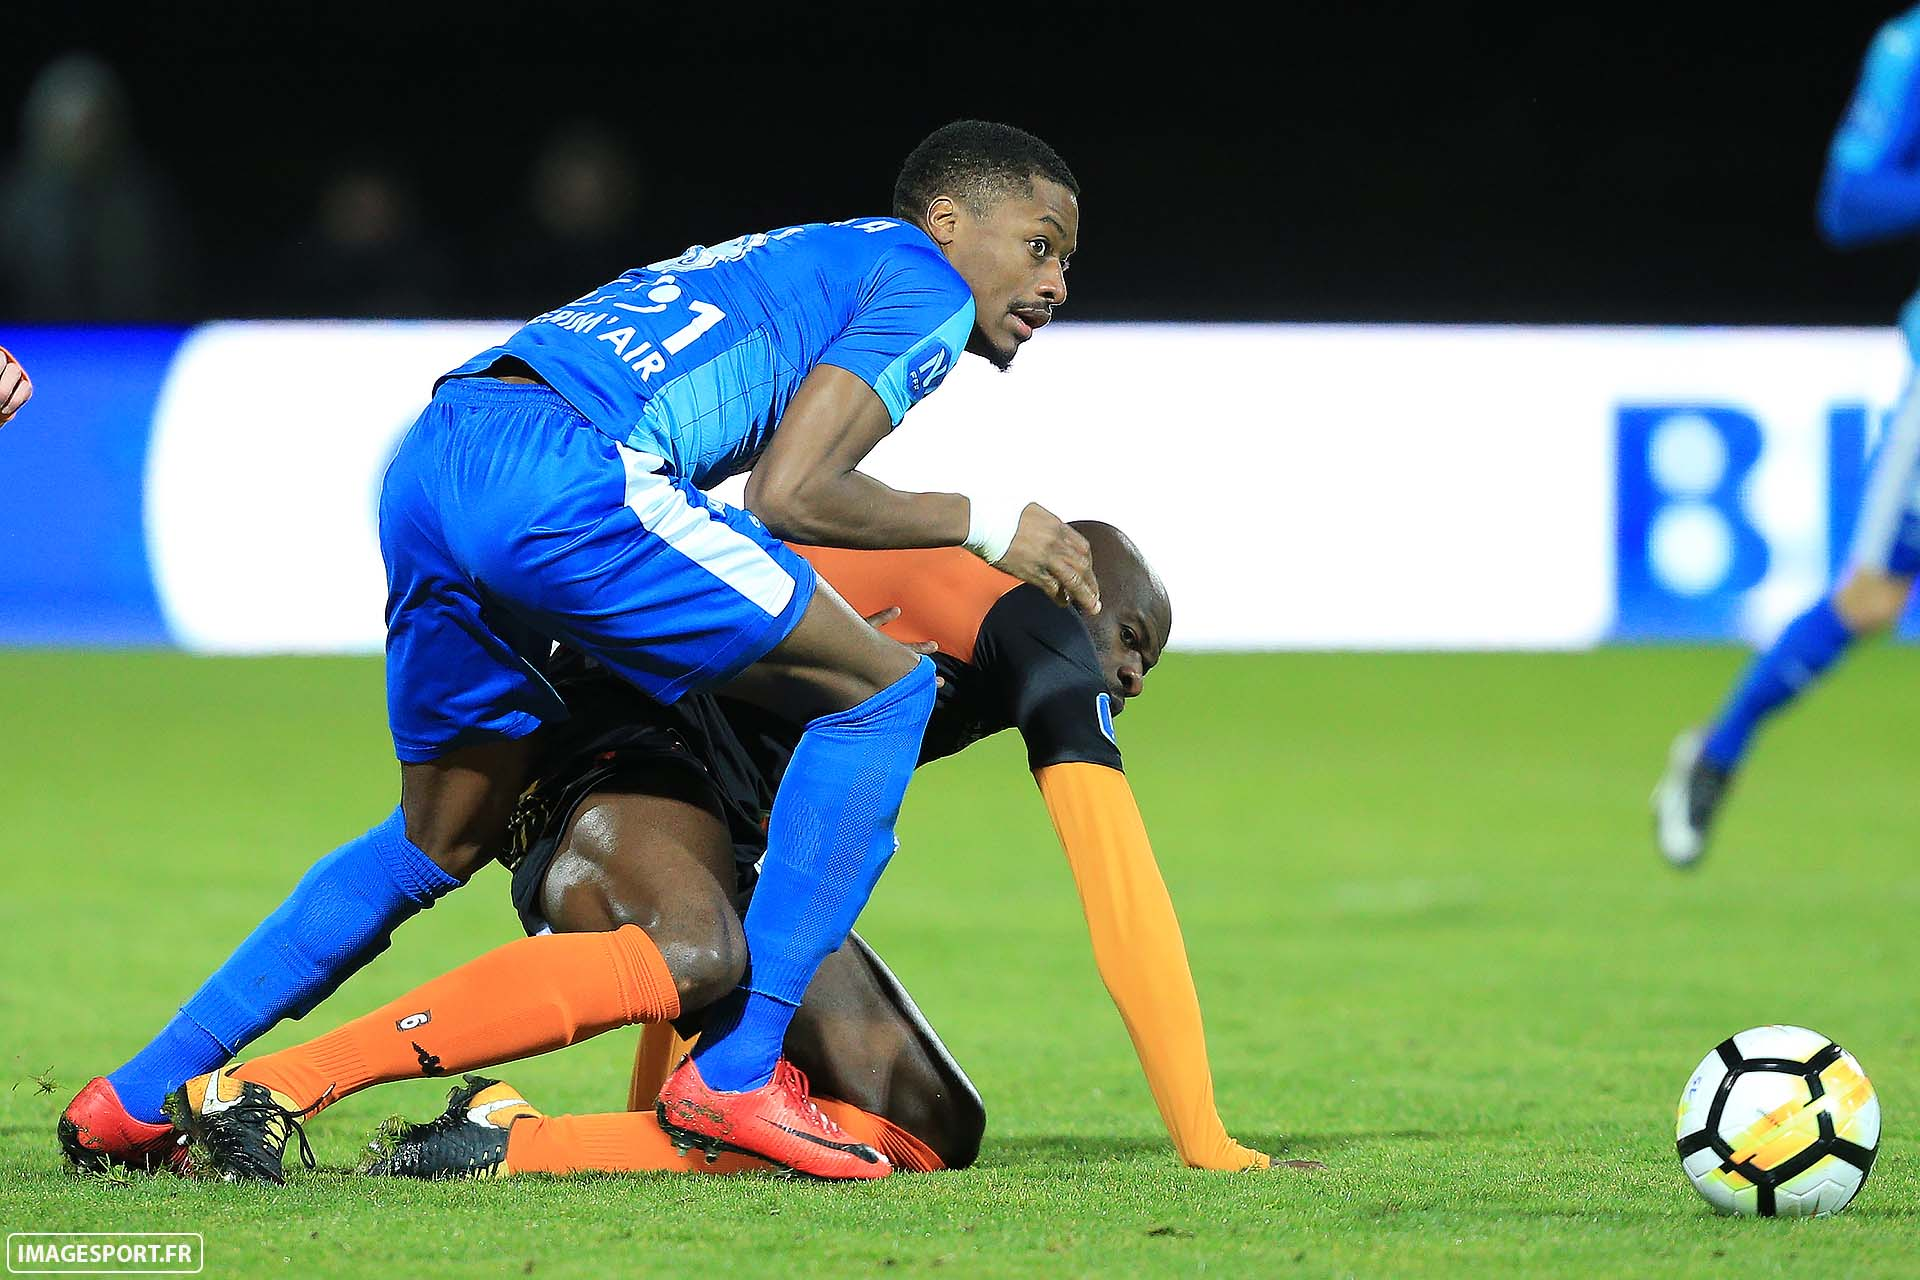 4-stade-lavallois-imagesport-dabo